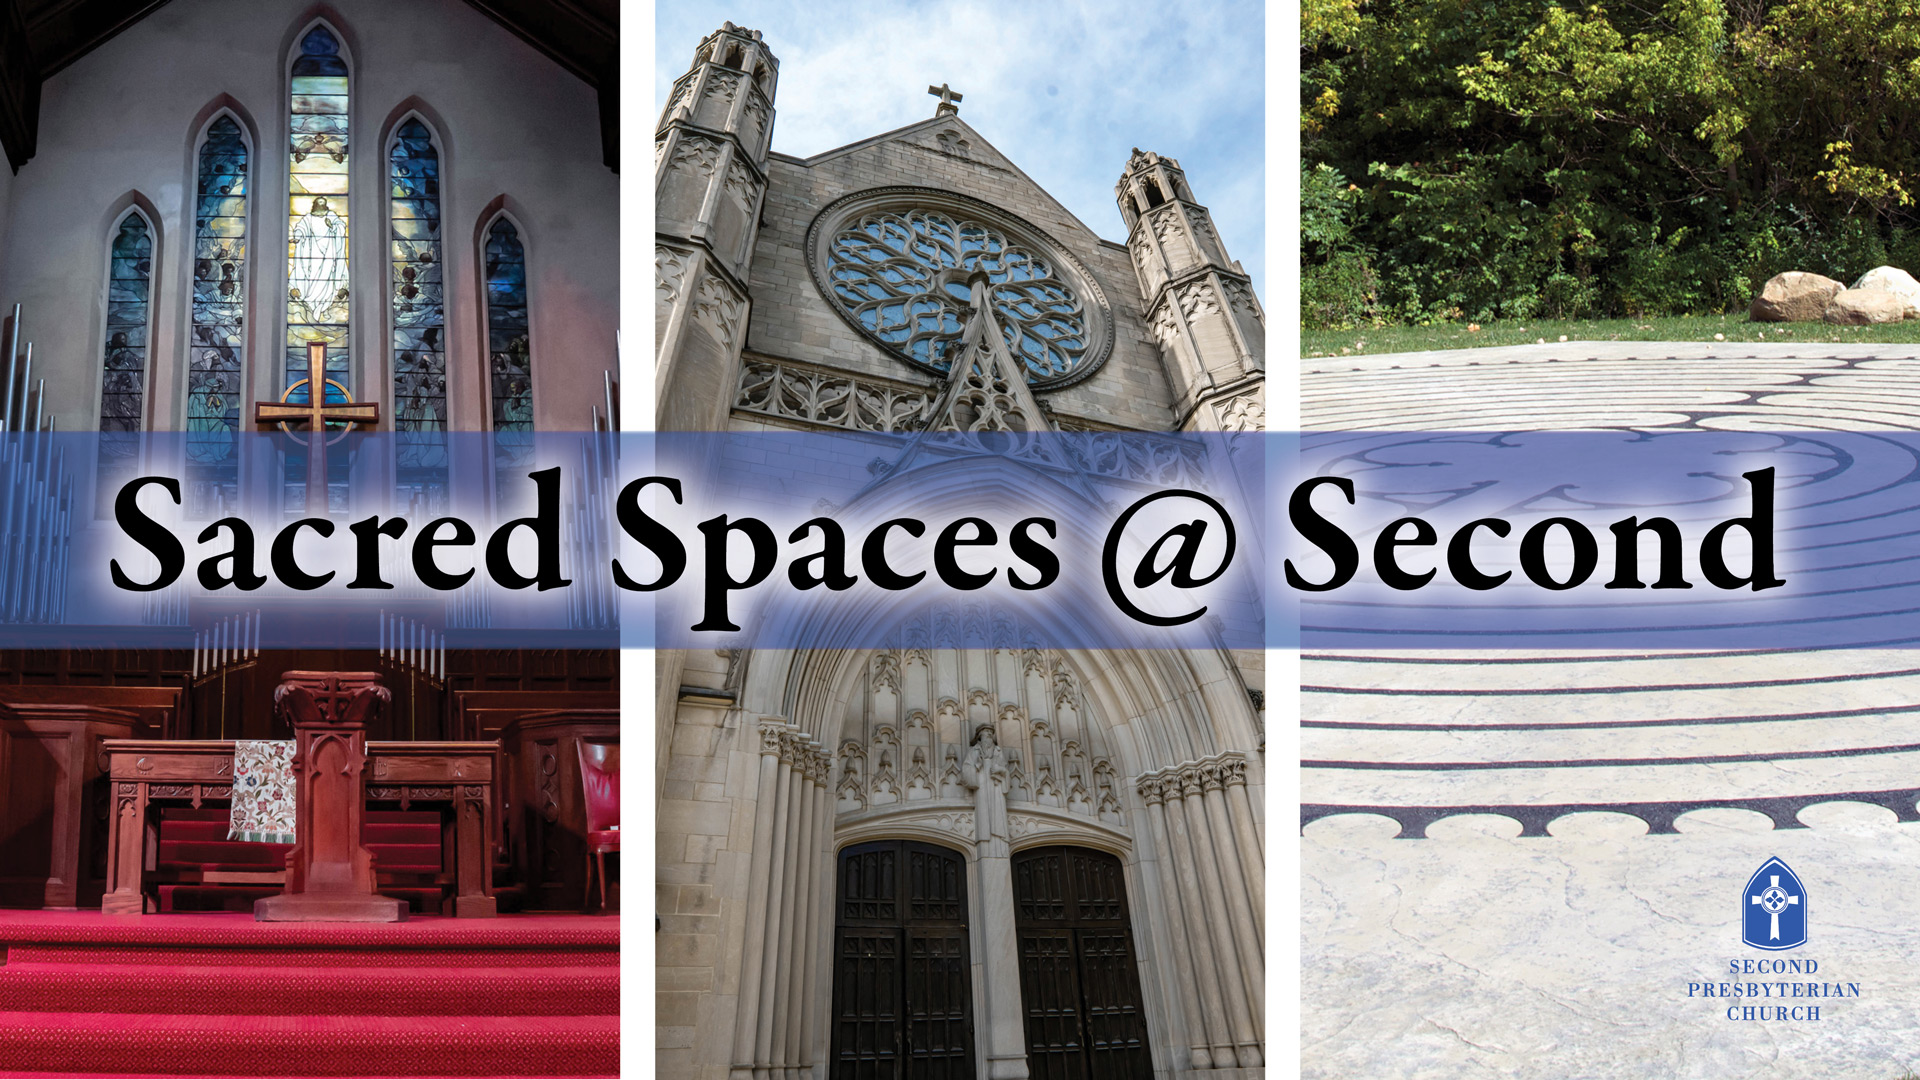 Sacred Spaces @ Second